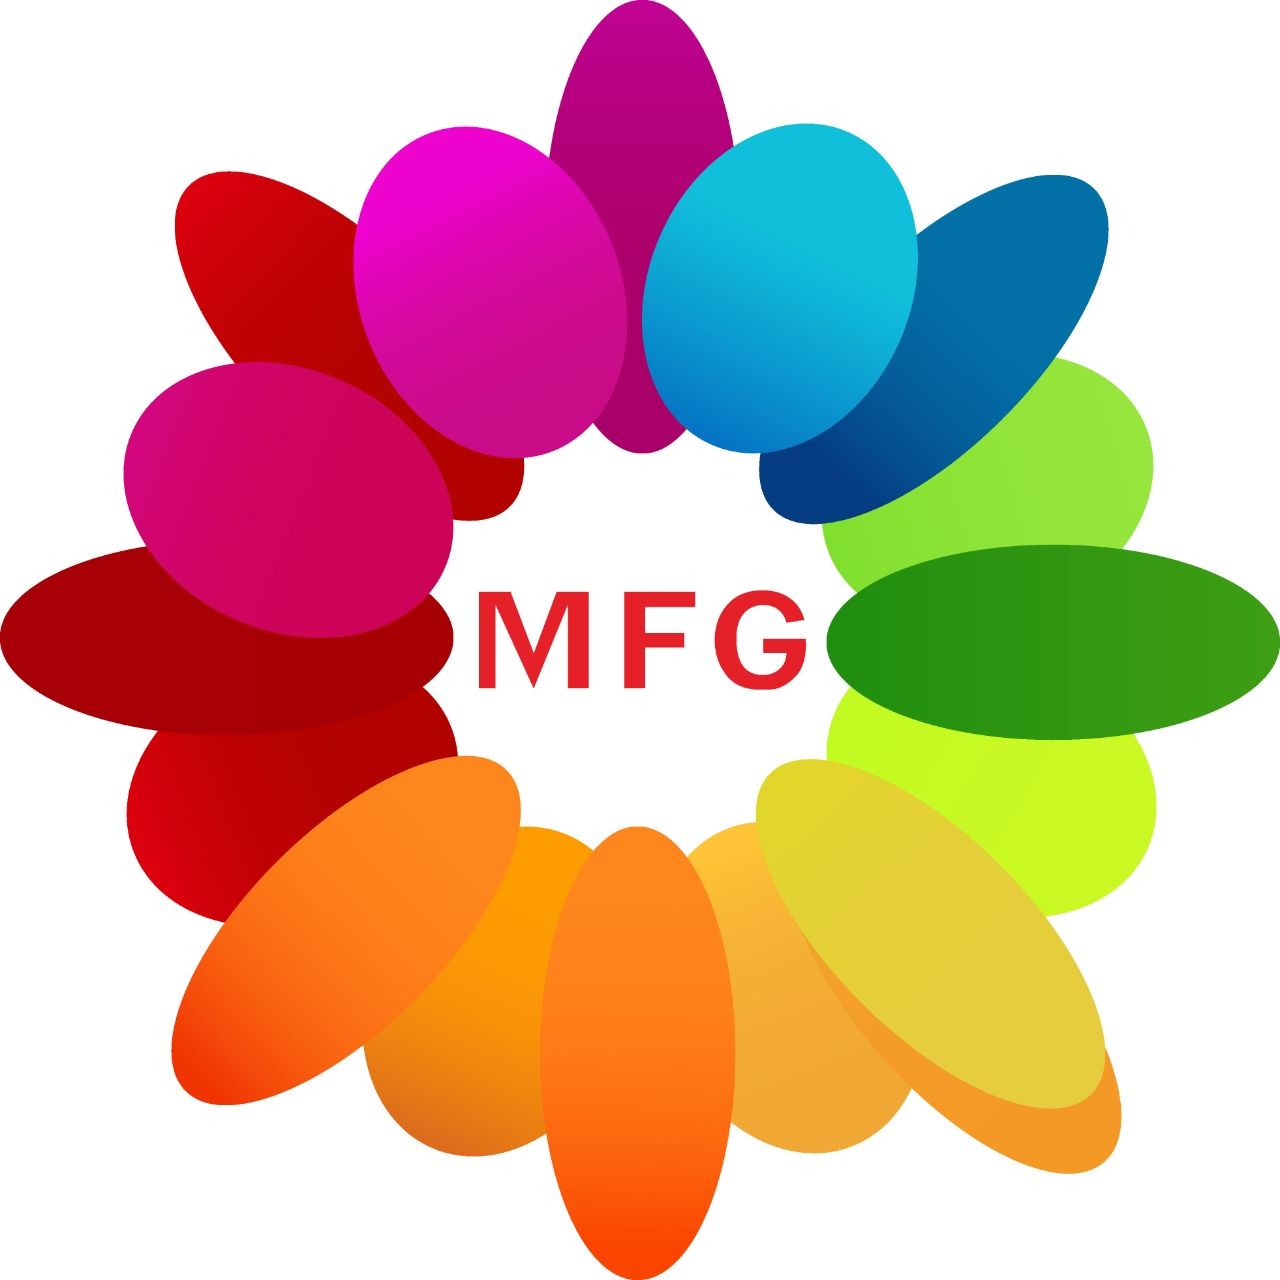 Bunch Of 10 Red Roses With 1 Pound Chocovanilla Cake With 3 Dairymilk